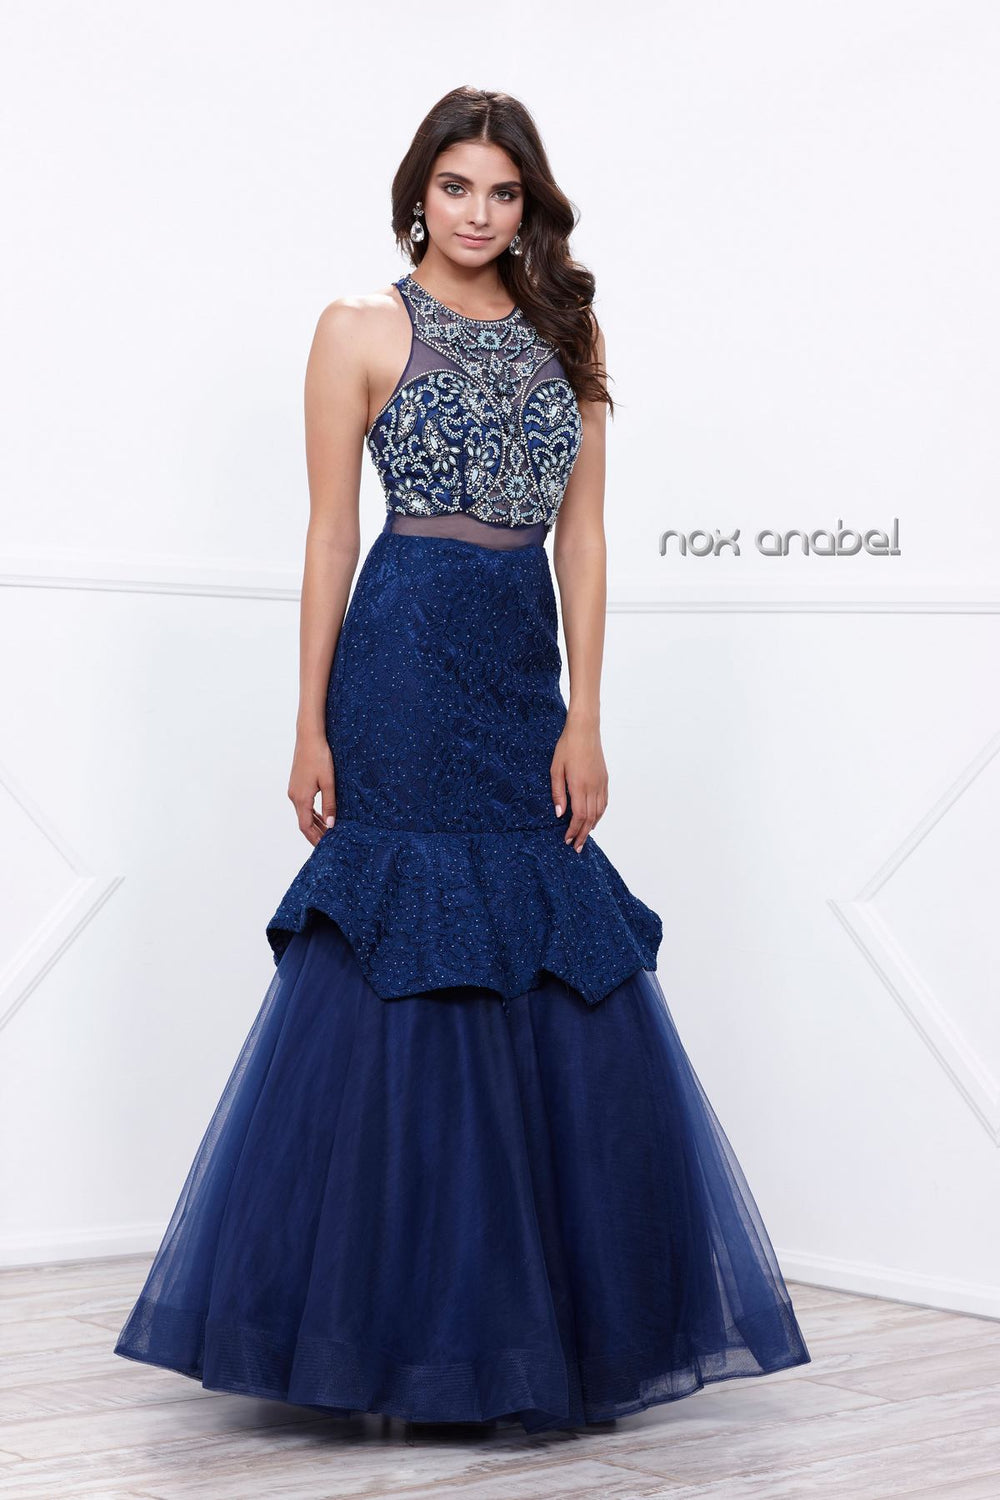 EVENING BEADED ILLUSION RUFFLED MERMAID DRESS